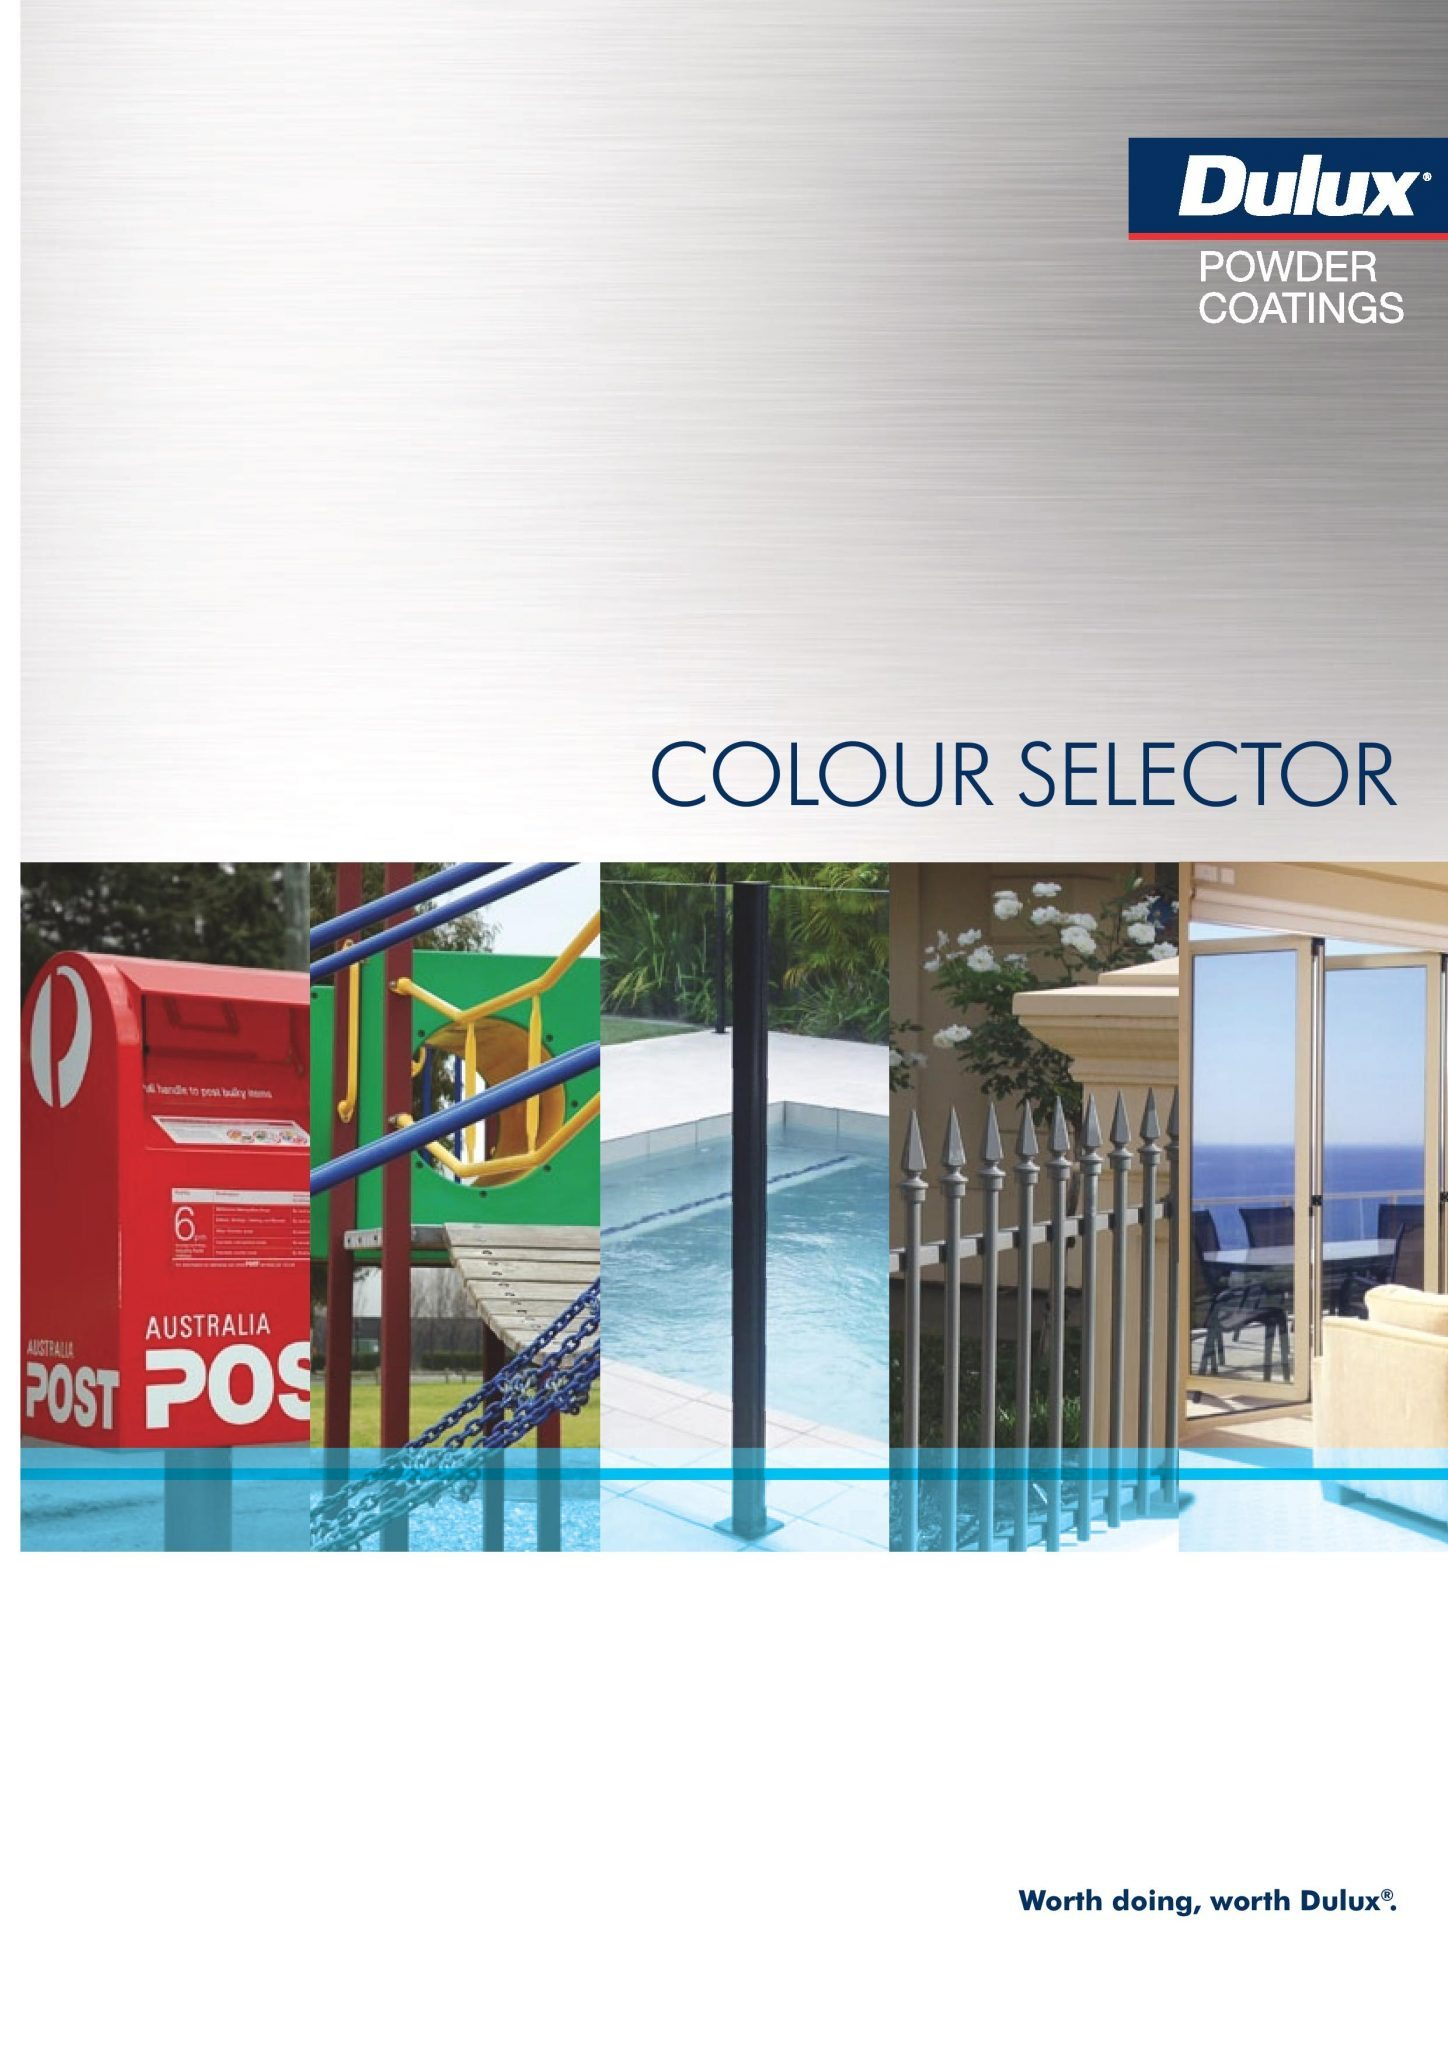 Dulux Powder Coating Color Selector Brochure Cover